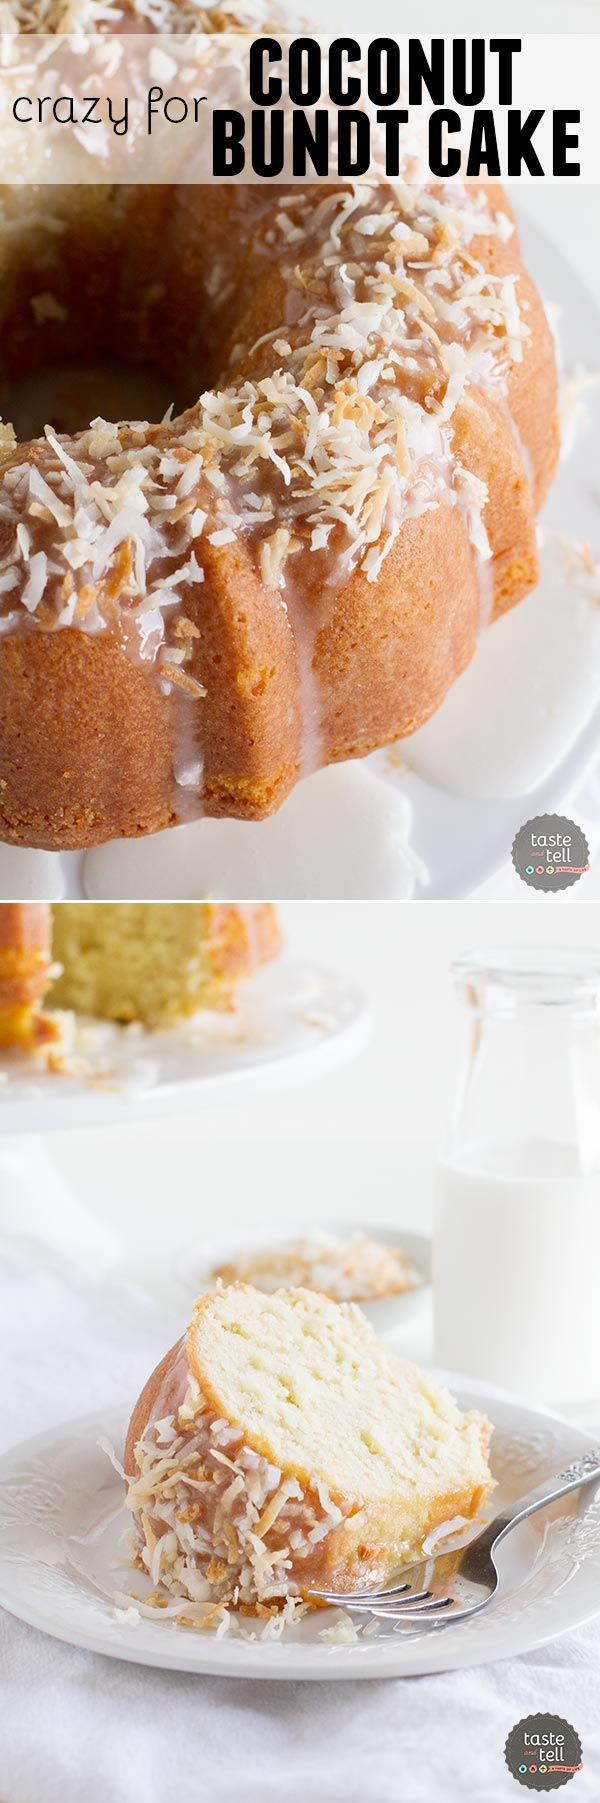 Crazy for Coconut Bundt Cake - the most perfect coconut bundt cake recipe that is flavorful and moist with the perfect amount of coconut flavor.: